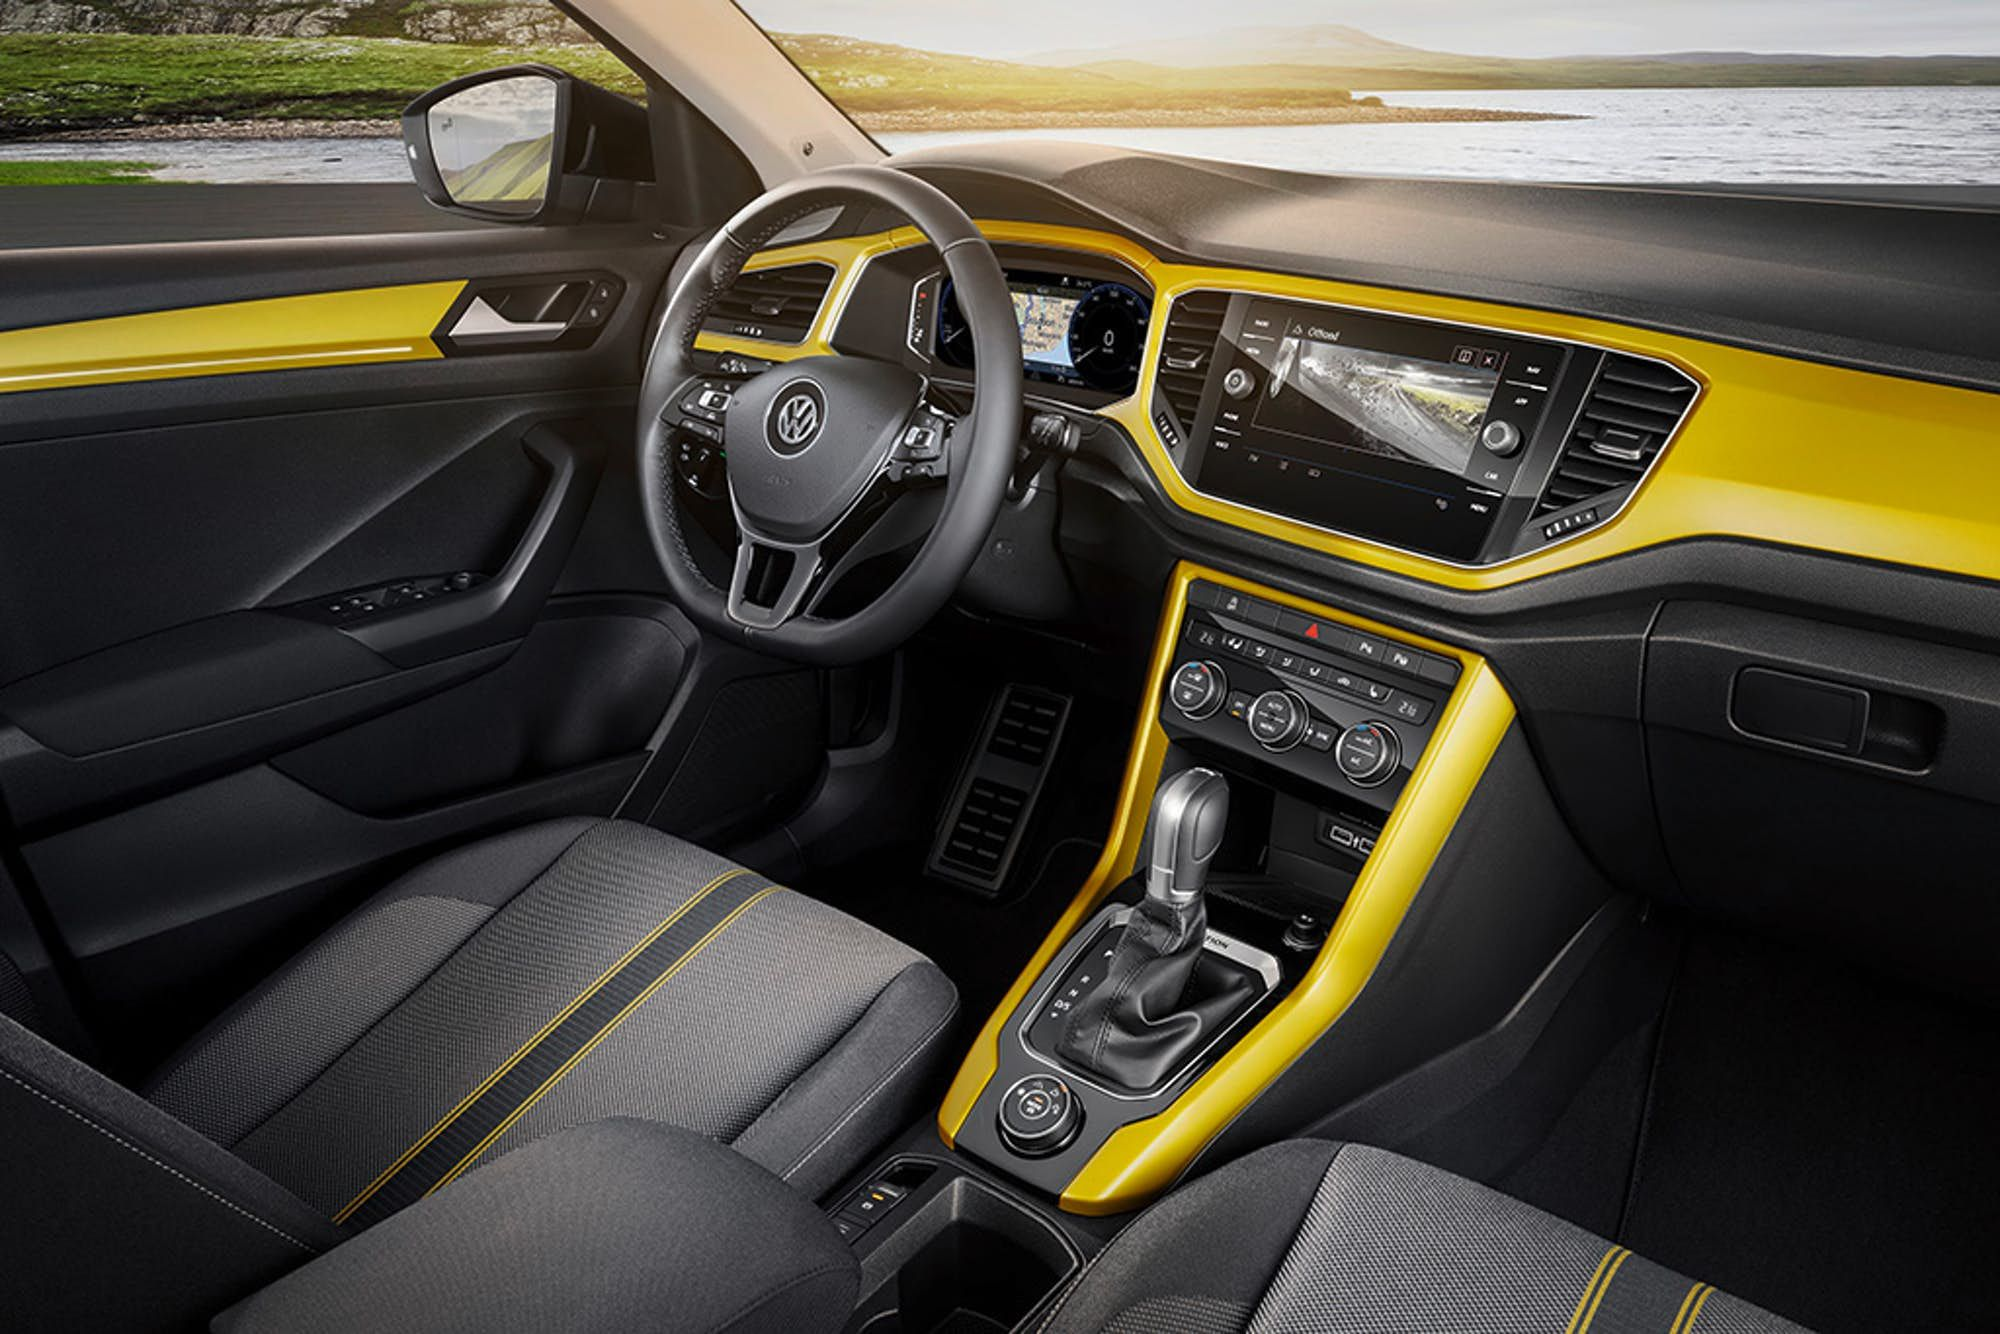 Volkswagen Shrinks And Sharpens Its Suv Lineup With All New T Roc Volkswagen Volkswagen Models Compact Suv